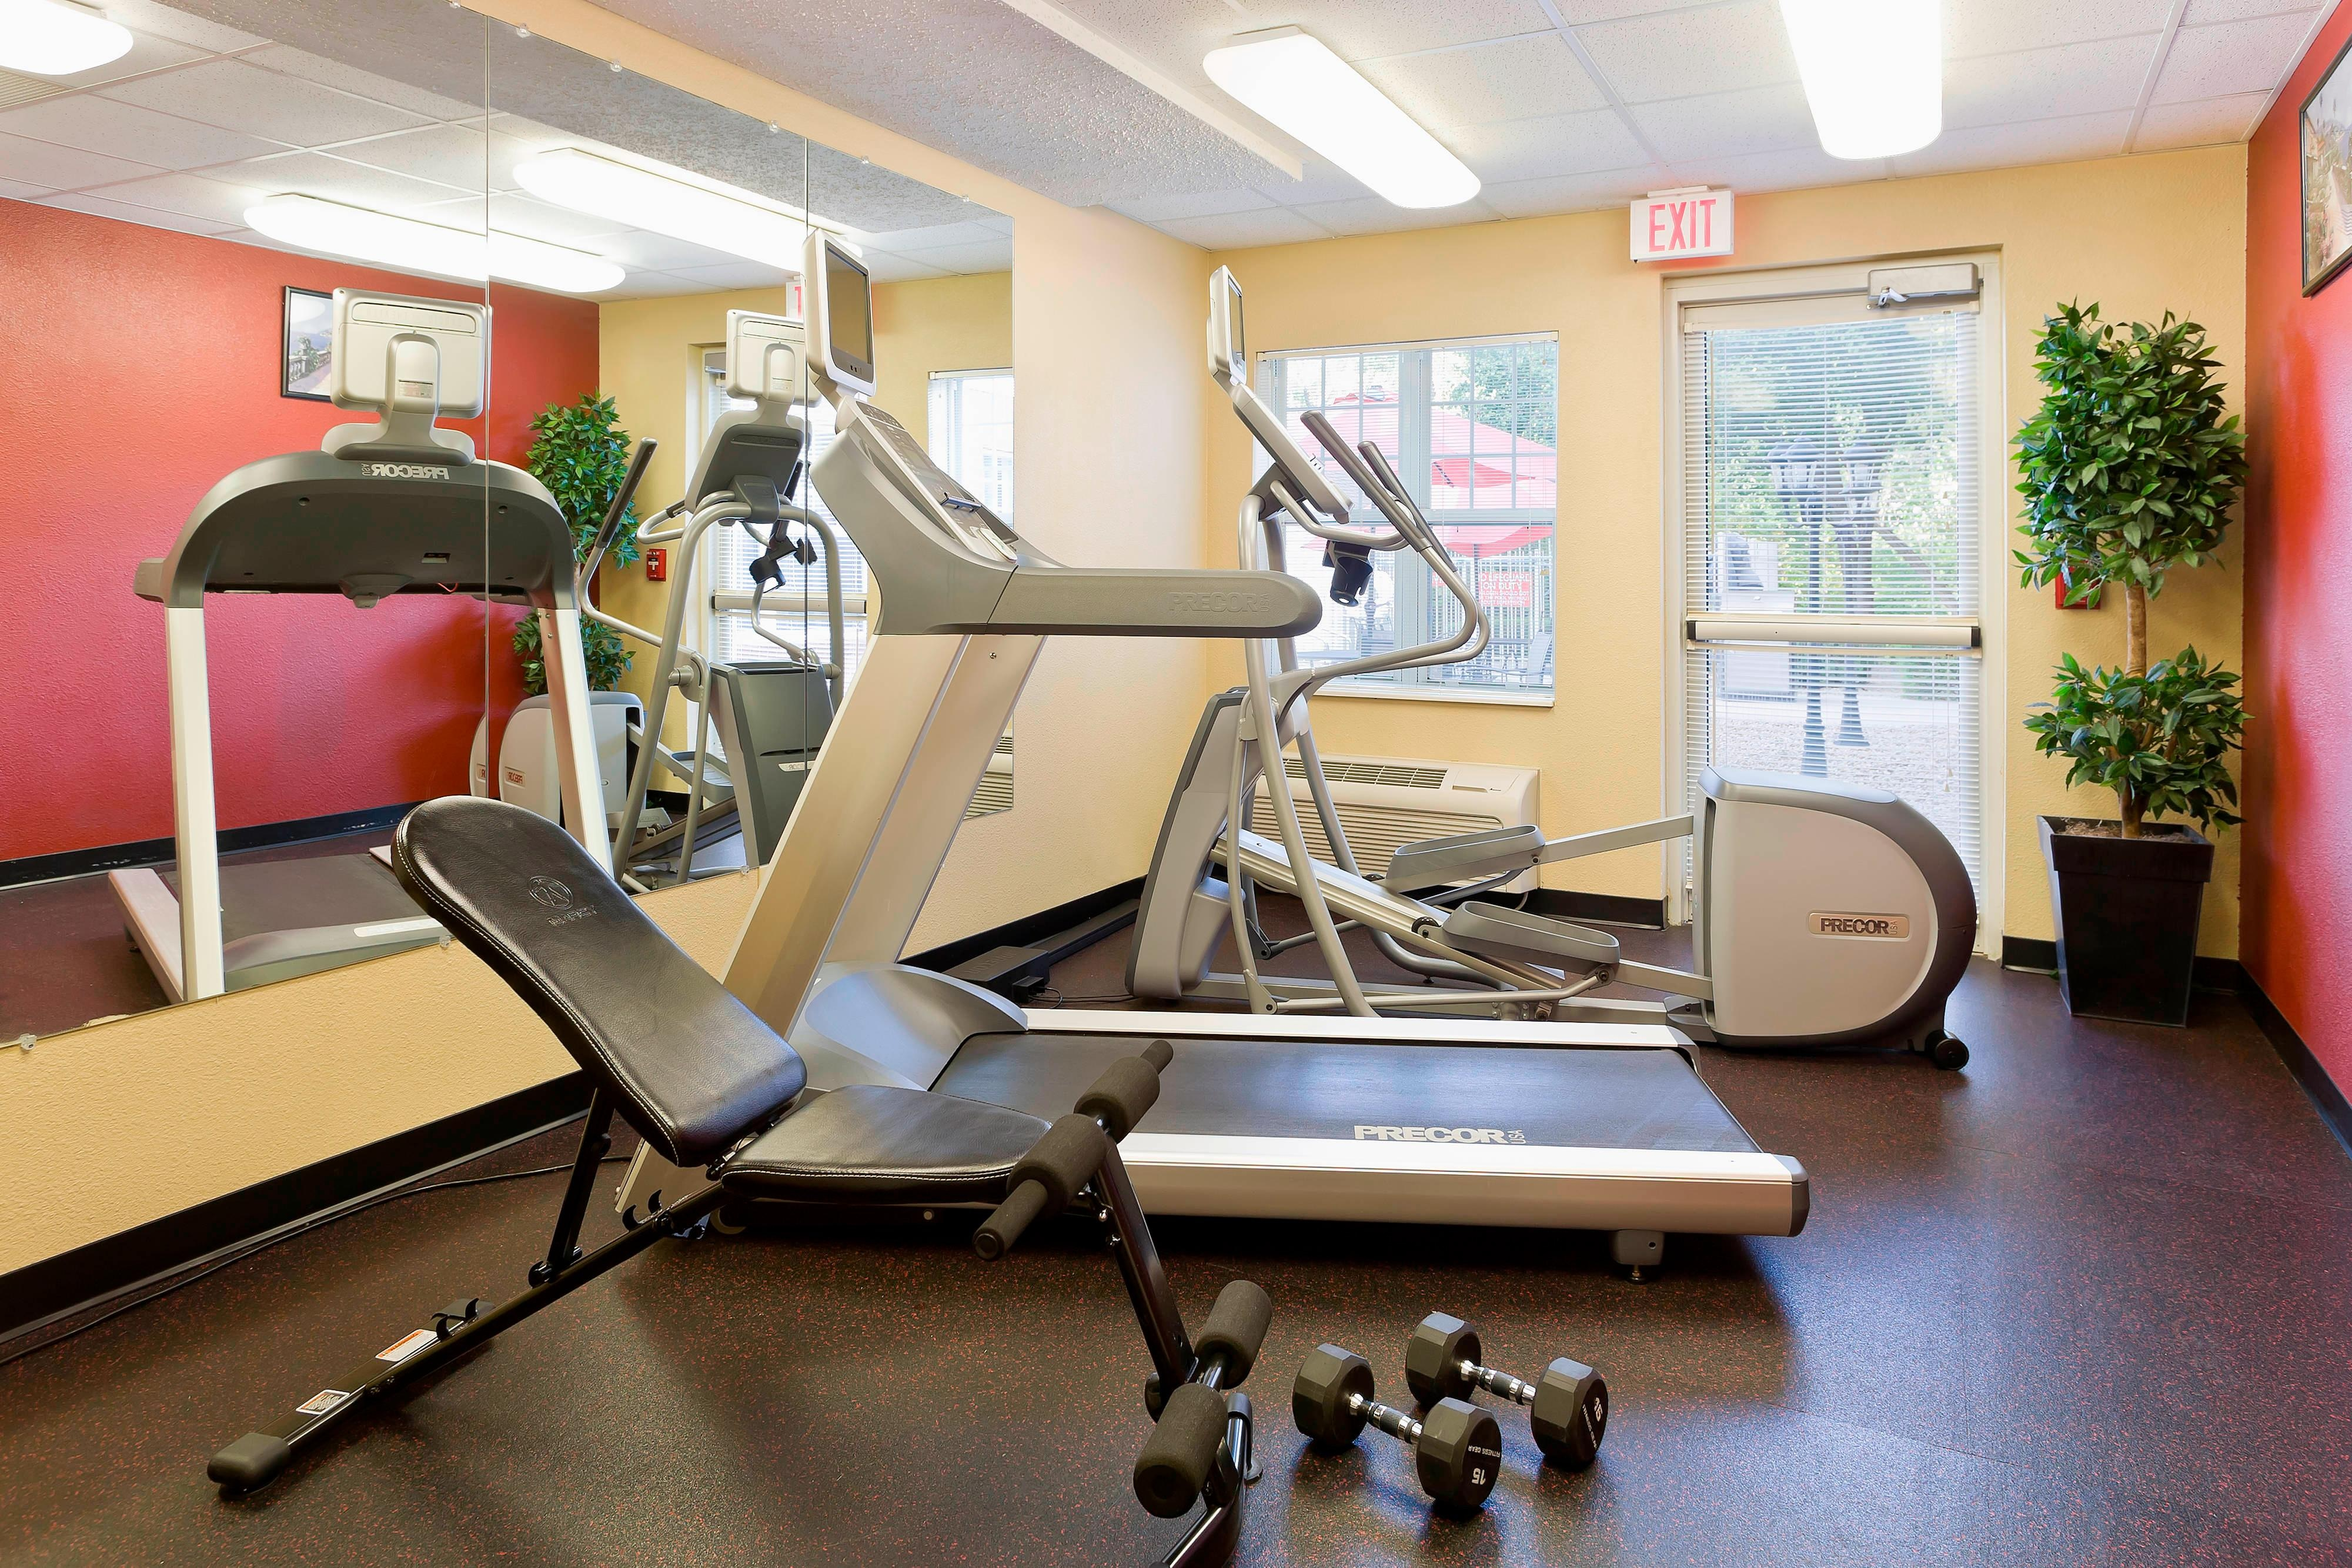 Bedford Hotel with Fitness Center